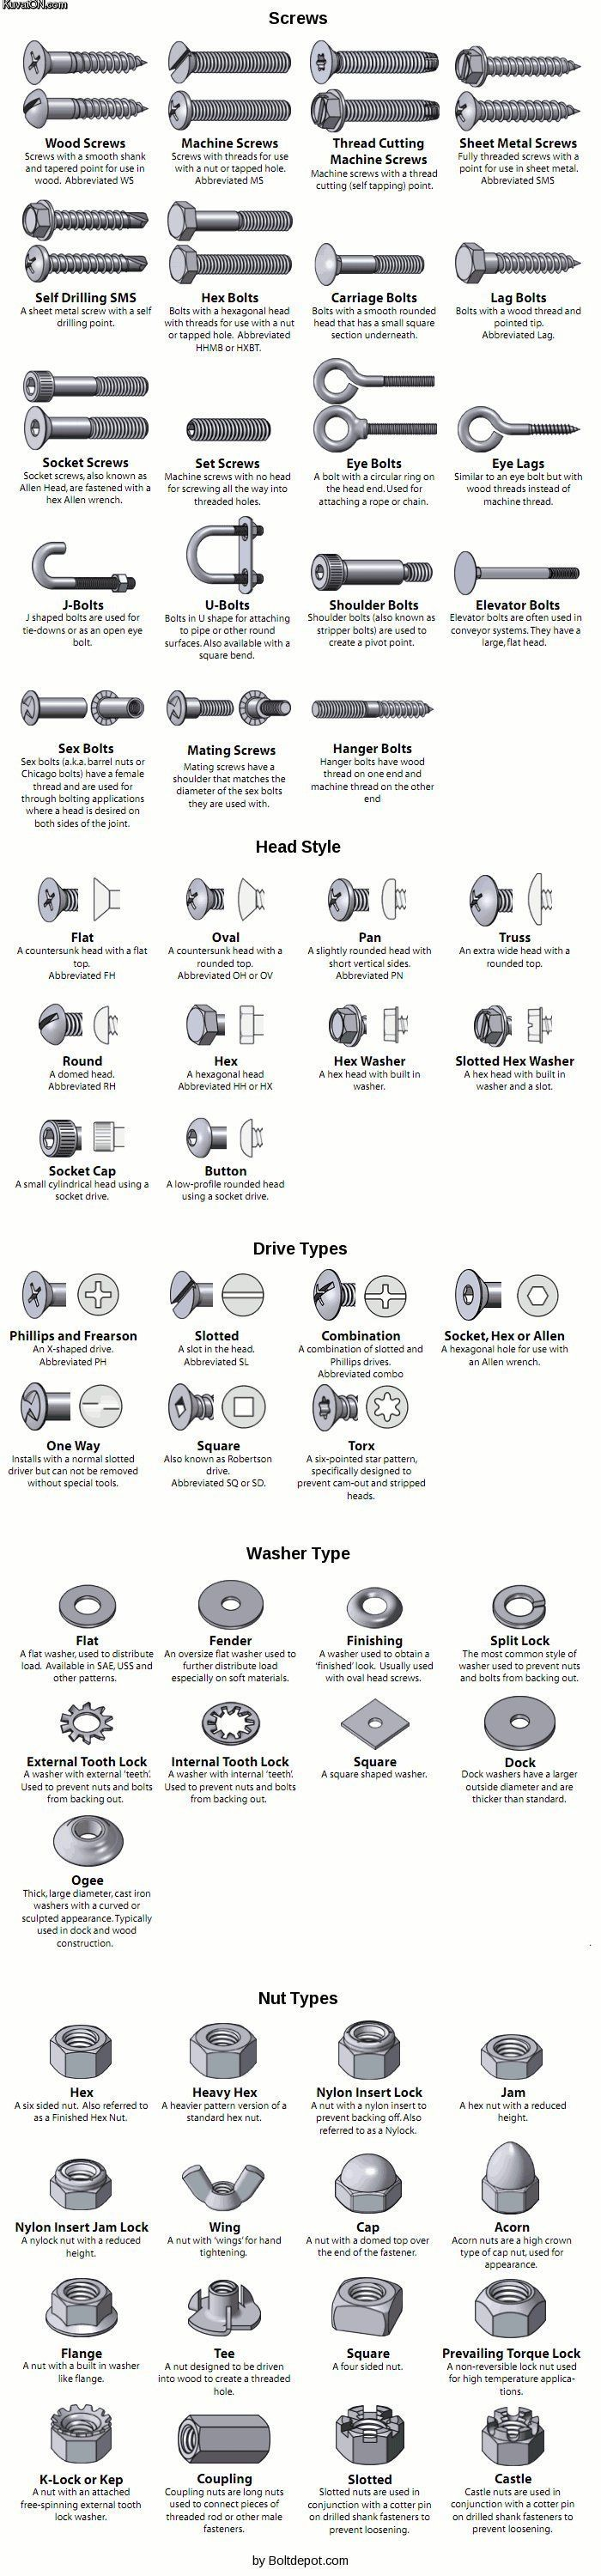 Everything you wanted to know about #Screws, #Nuts, #Bolts, etc.